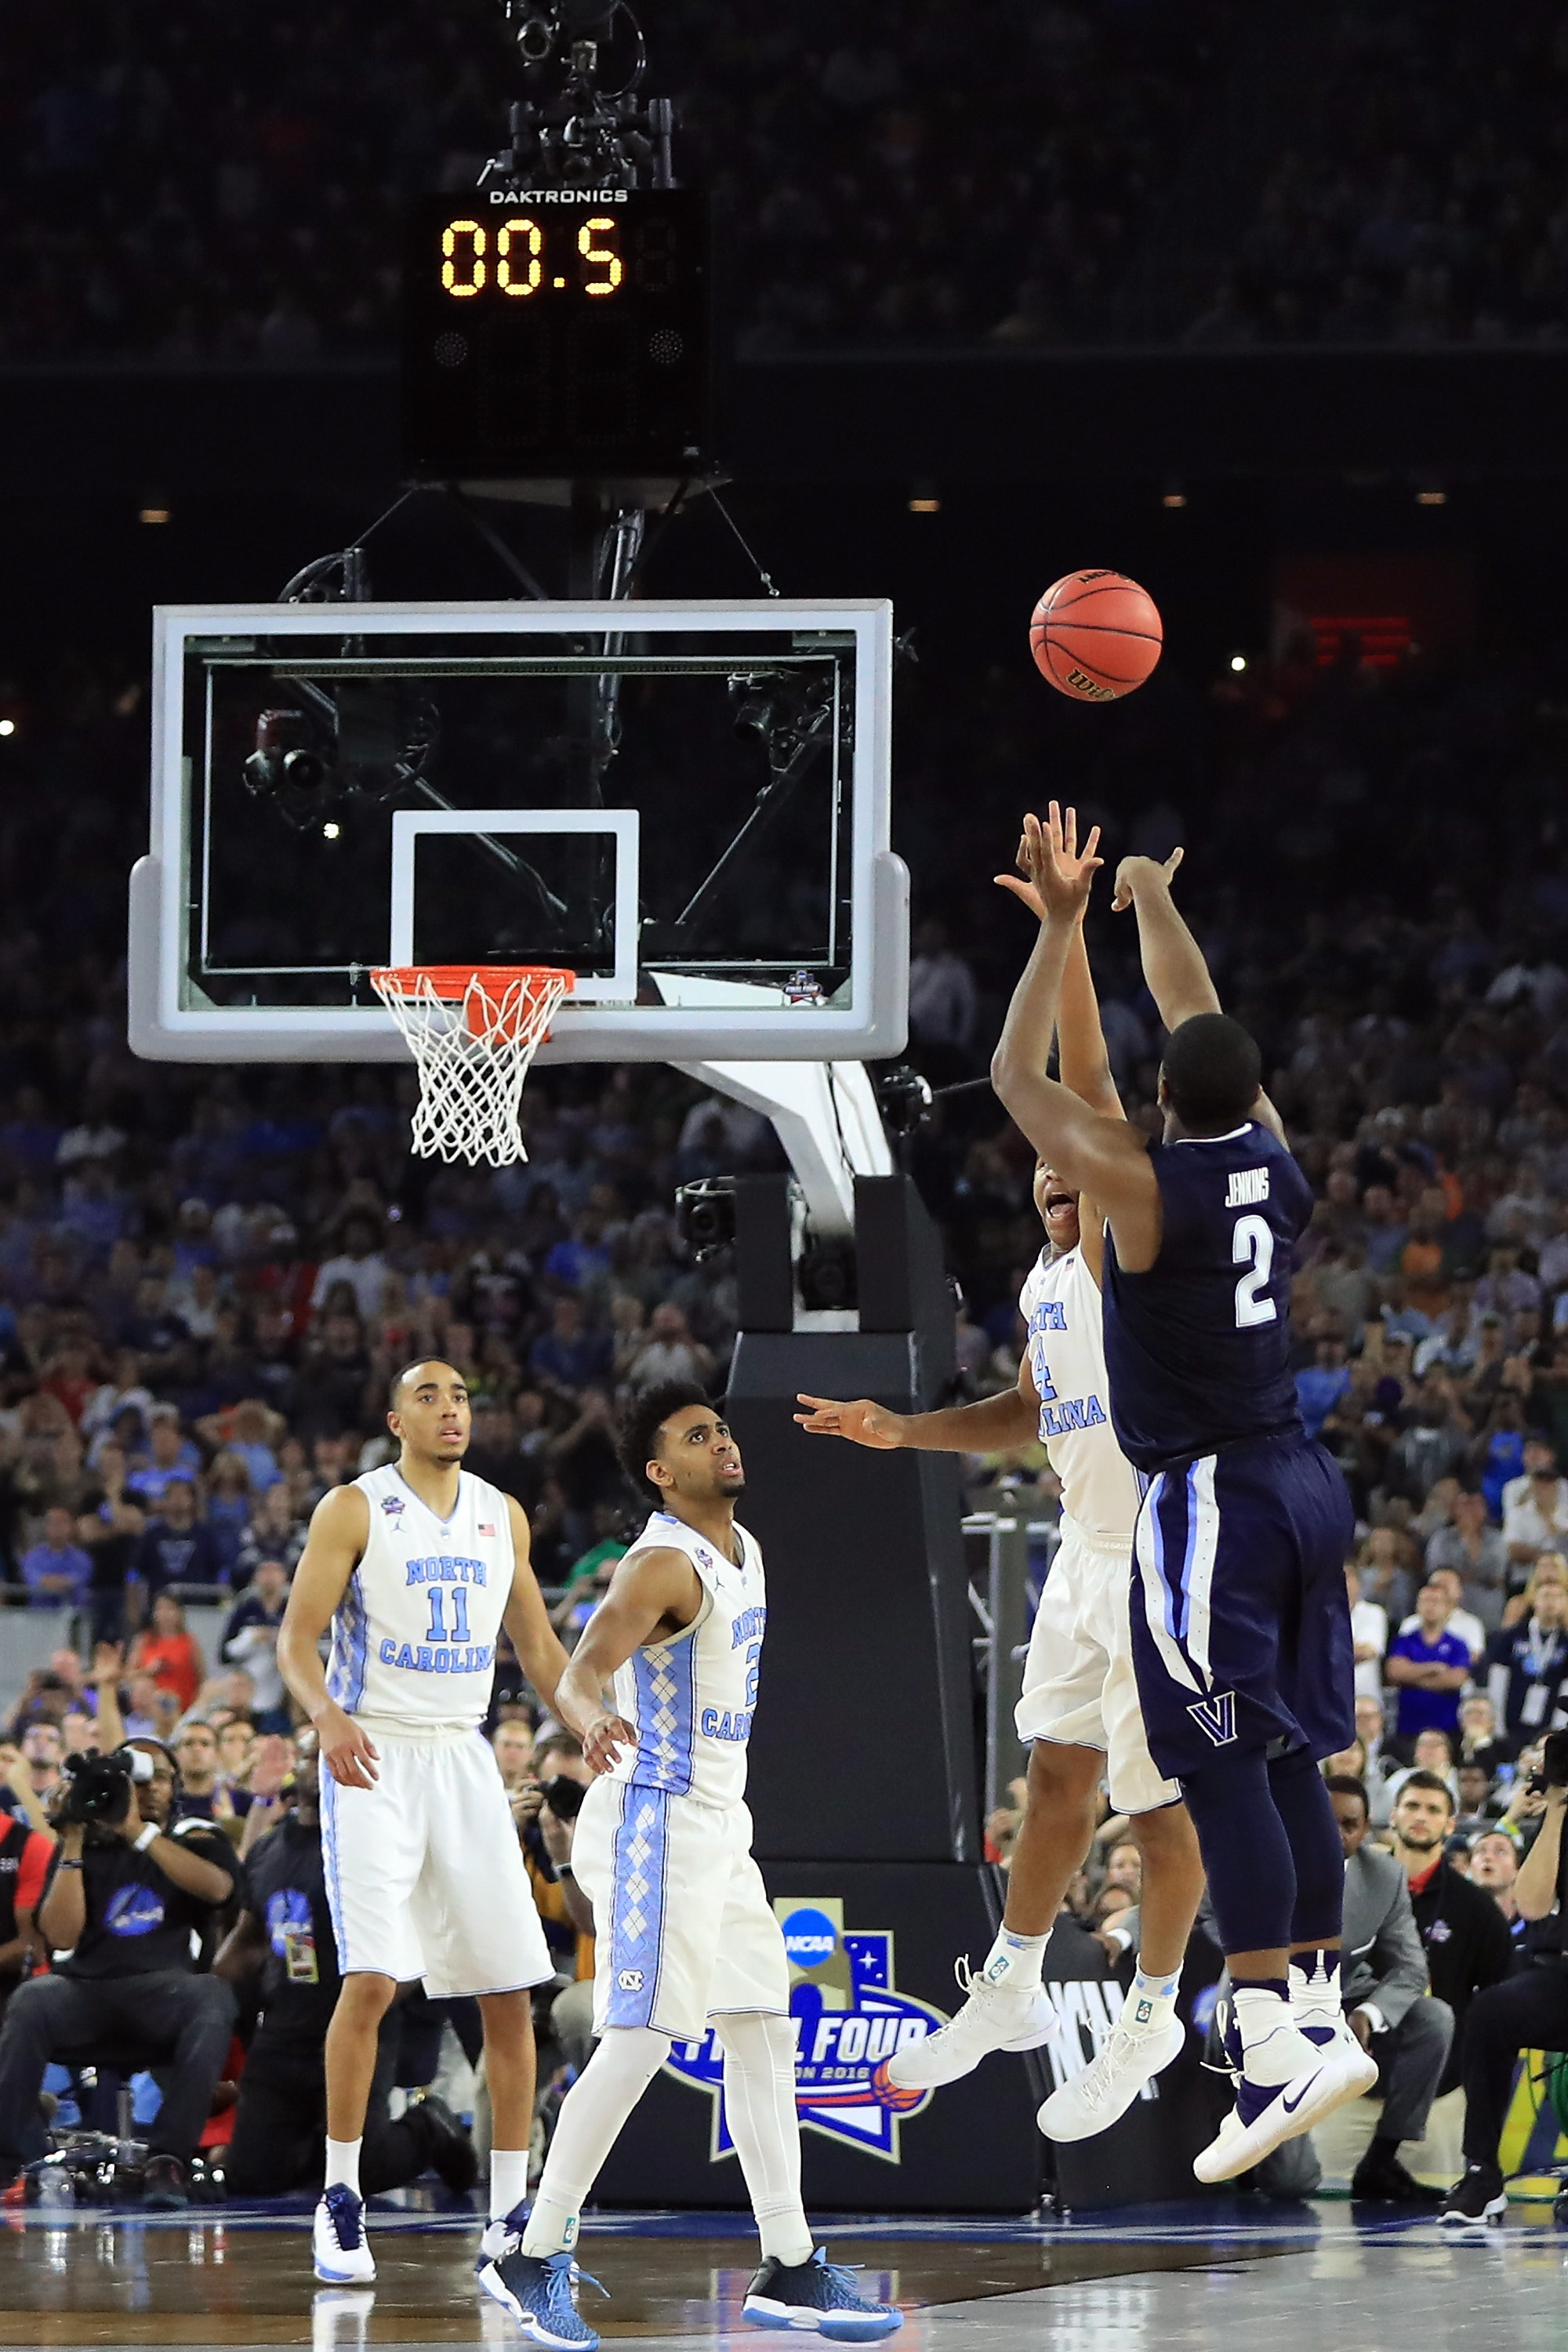 With the clock winding down, Villanova's Kris Jenkins puts up the game-winning three-pointer over North Carolina's defense.